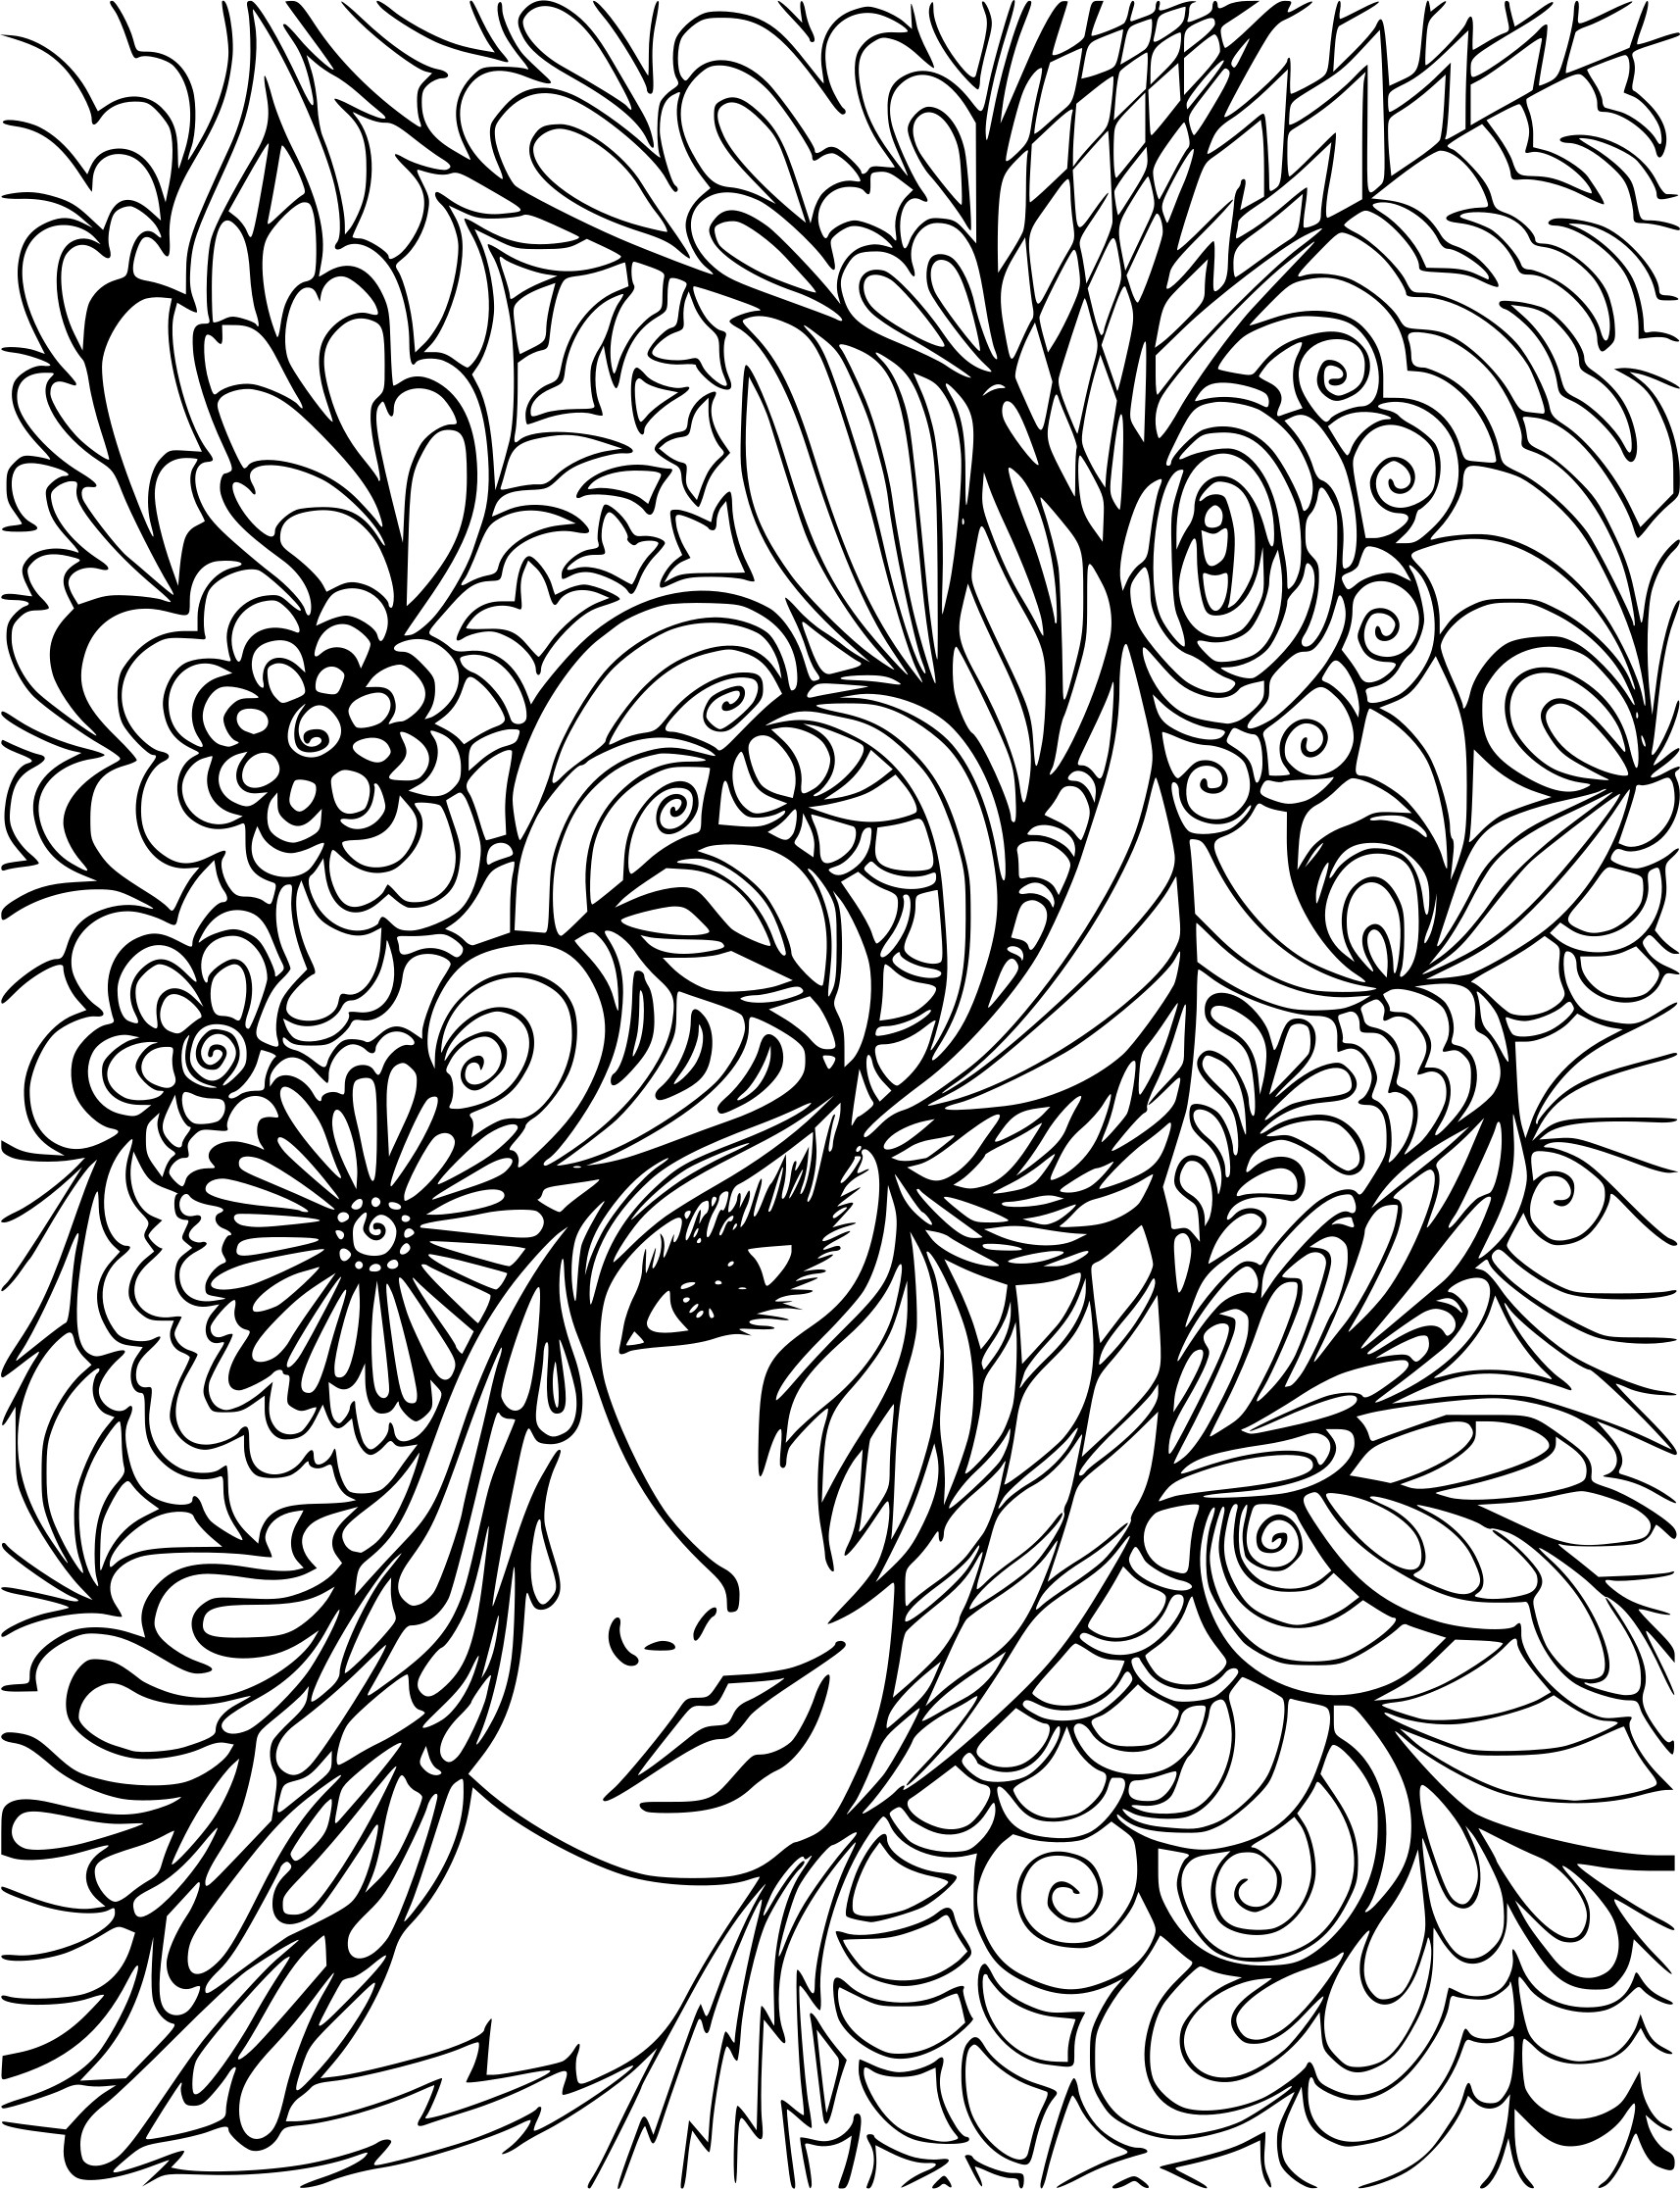 Coloriage anti stress dessin imprimer sur coloriages info - Dessins anti stress ...